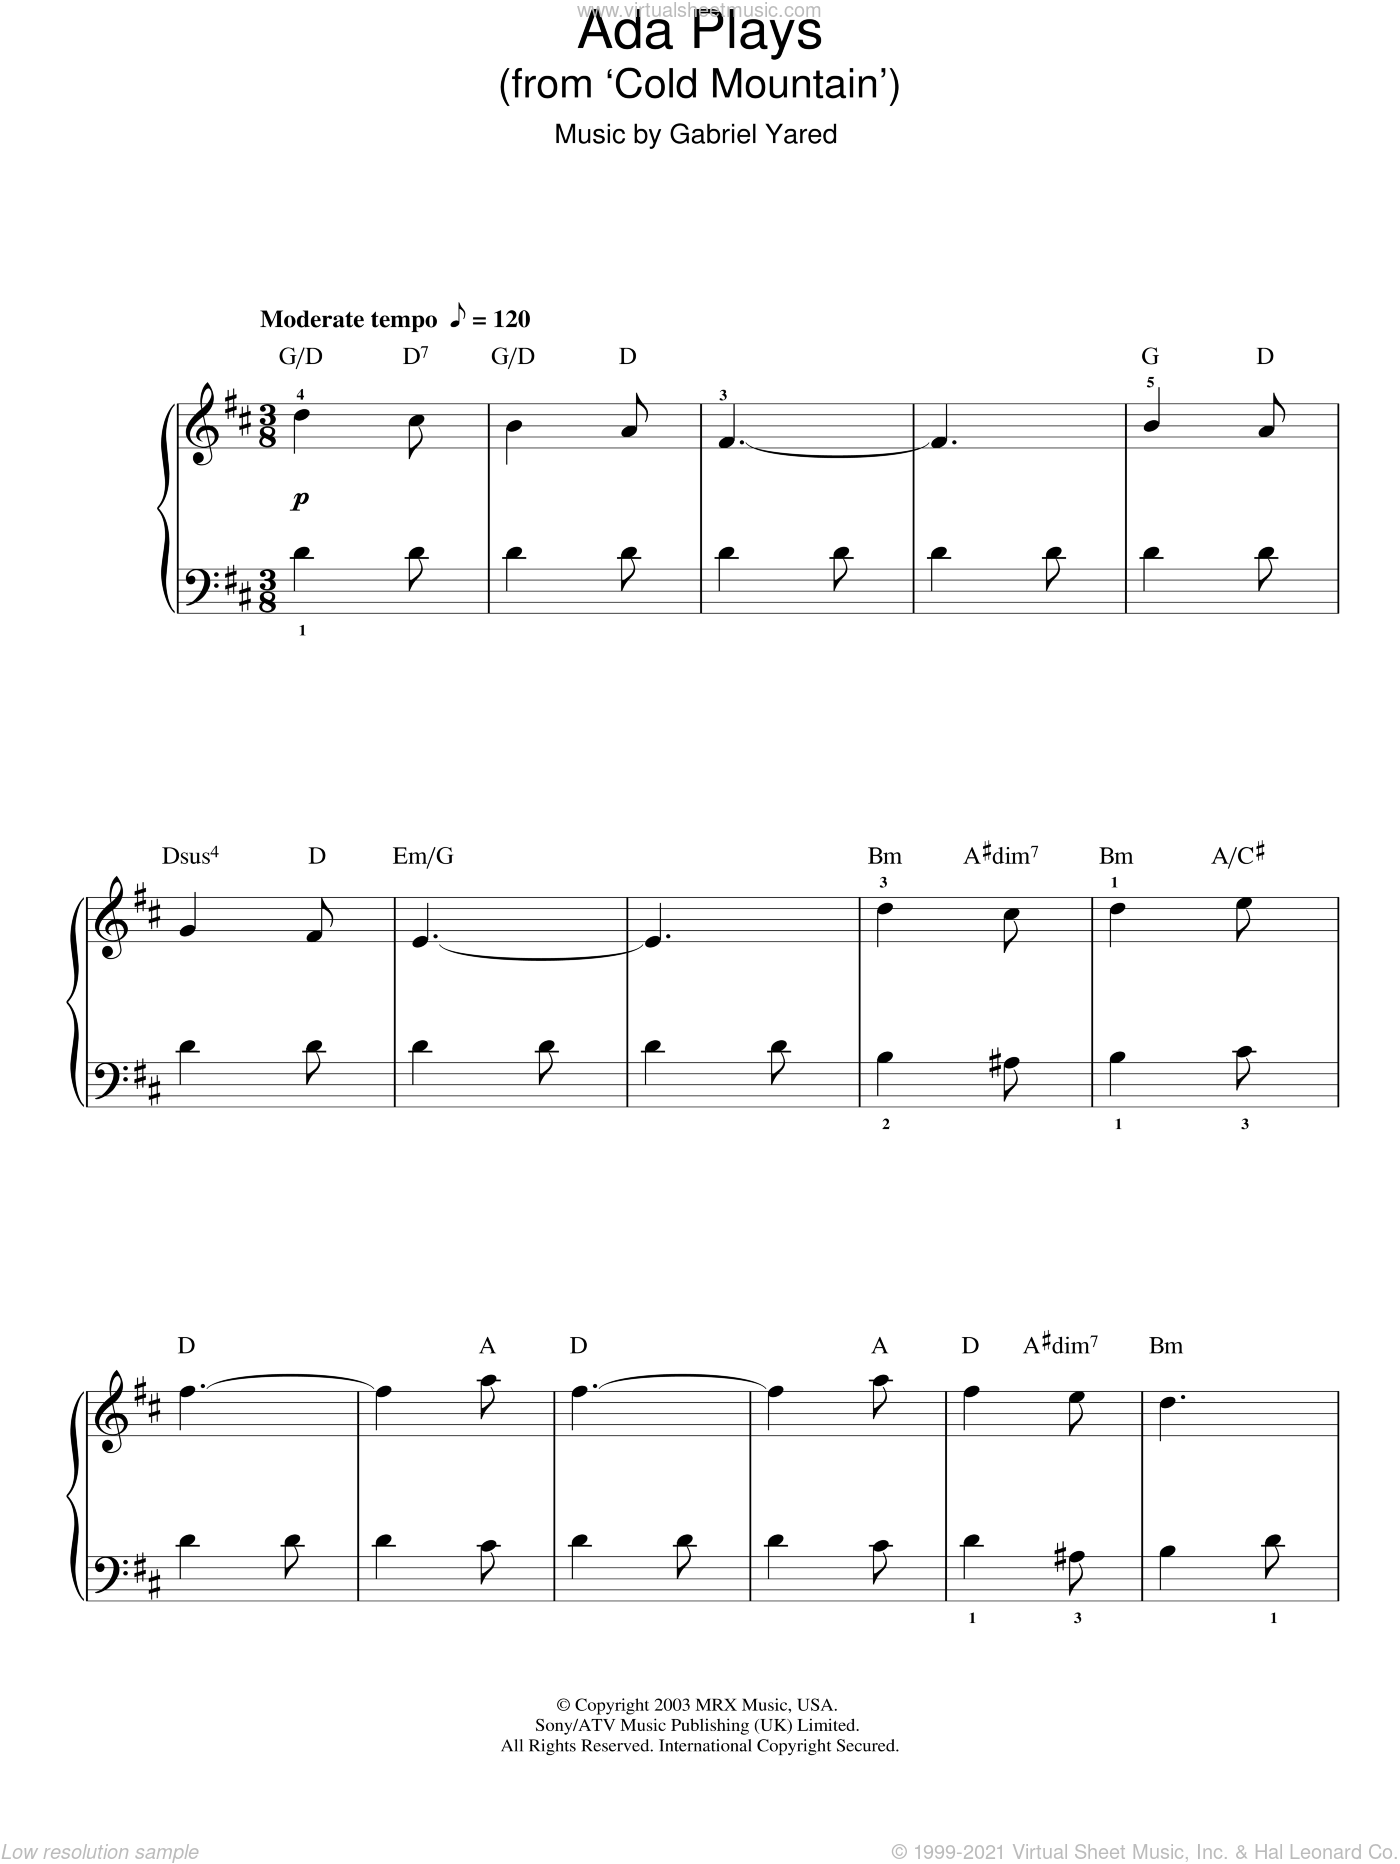 Ada Plays sheet music for piano solo (chords) by Gabriel Yared